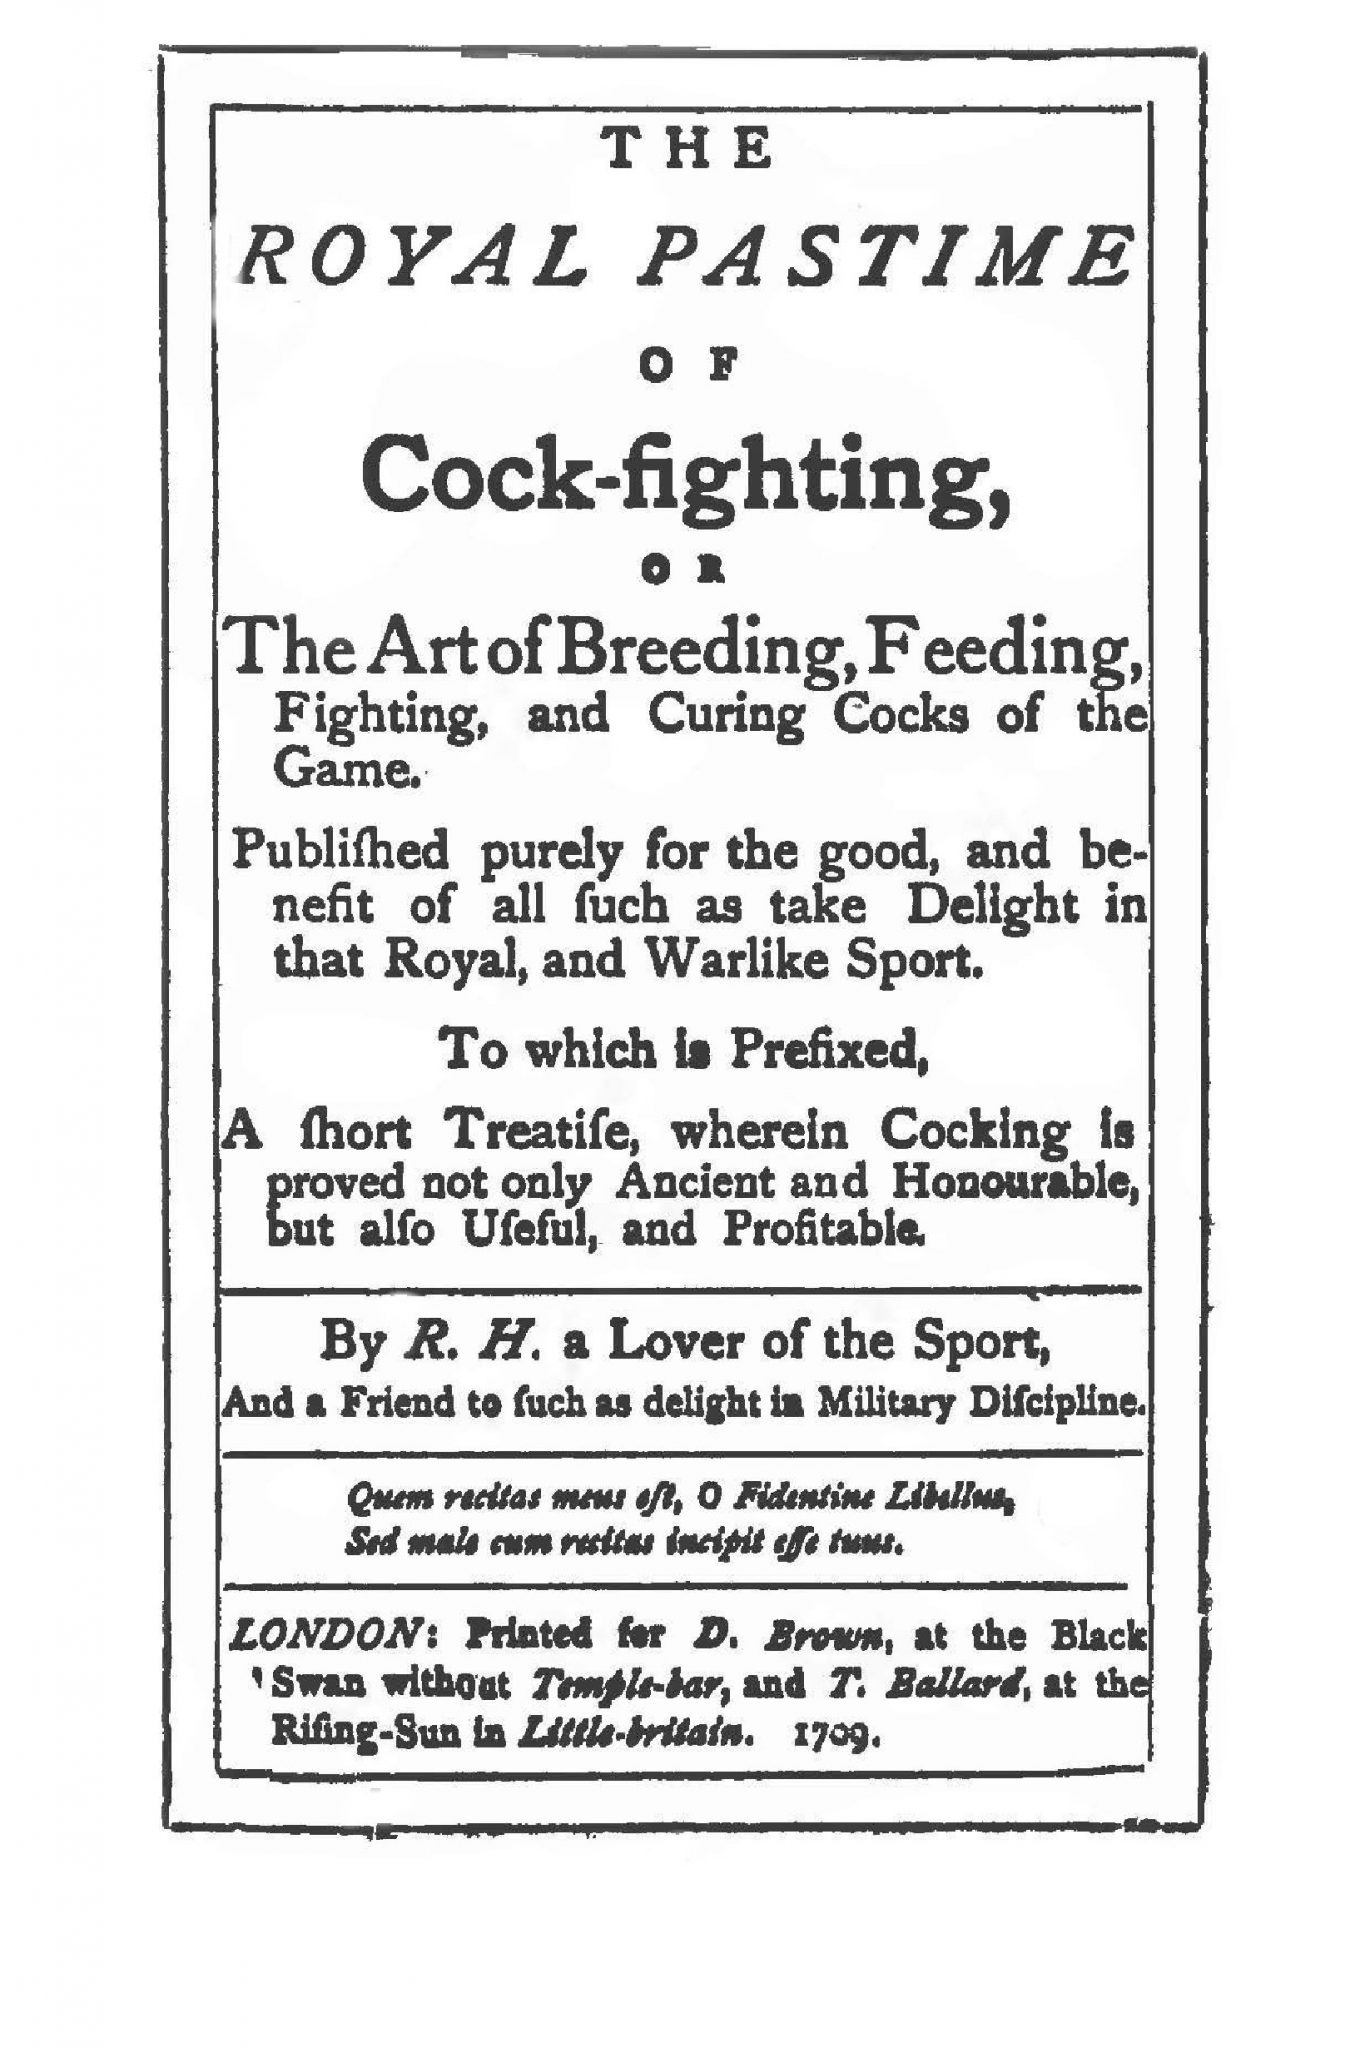 The Roayl Pastime of Cockfighting, London, 1709